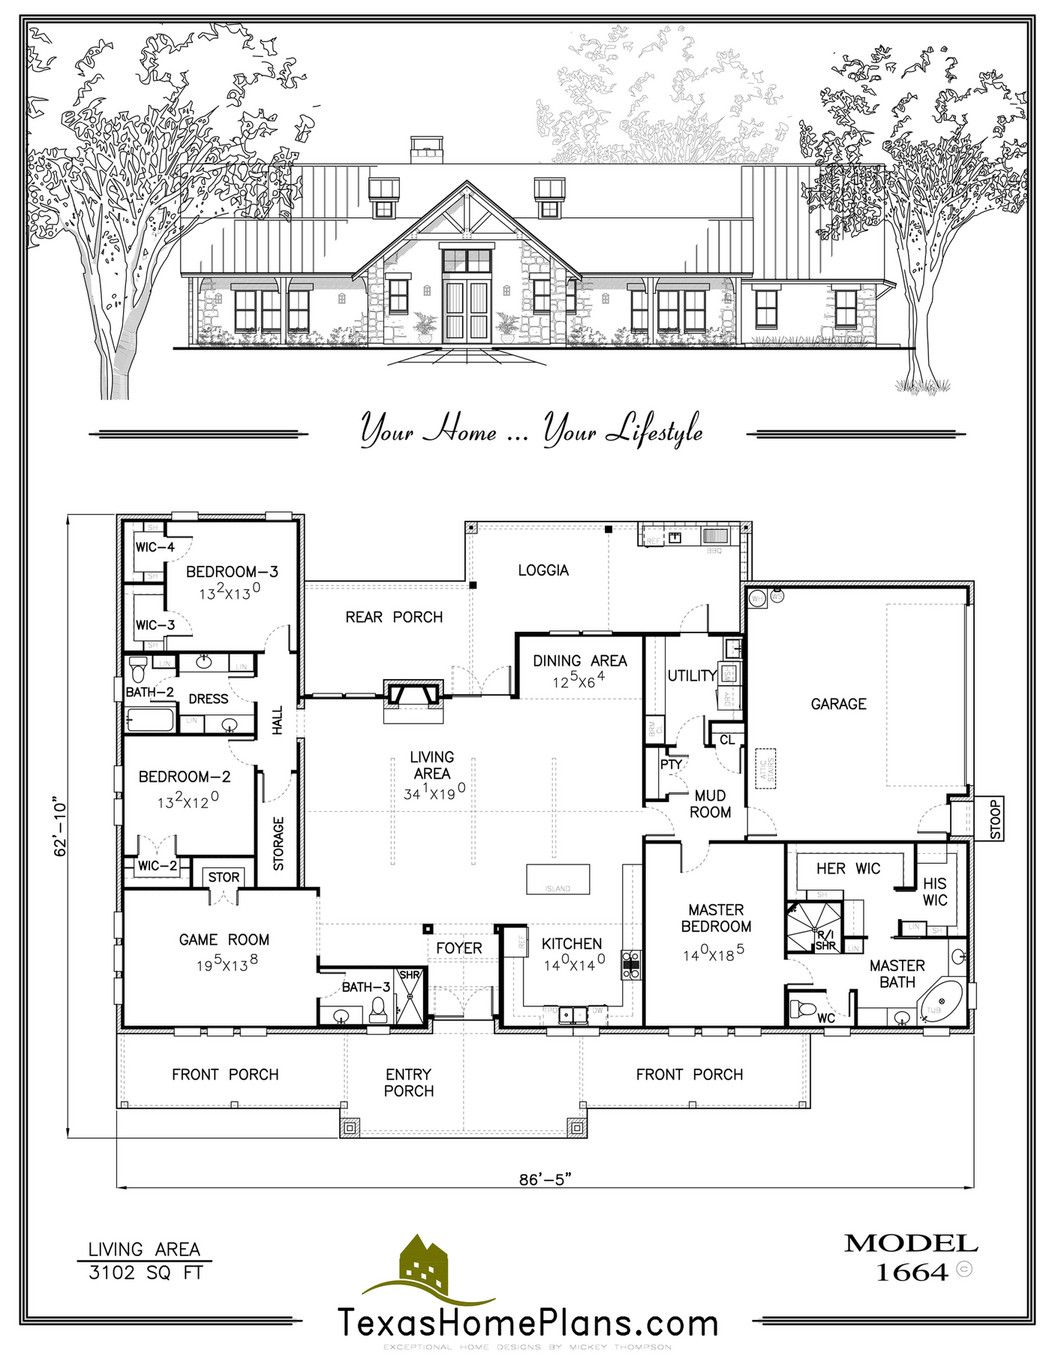 Texas Home Plans Texas Ranch Homes Page 80 81 Texas Ranch Homes Ranch House Texas Ranch